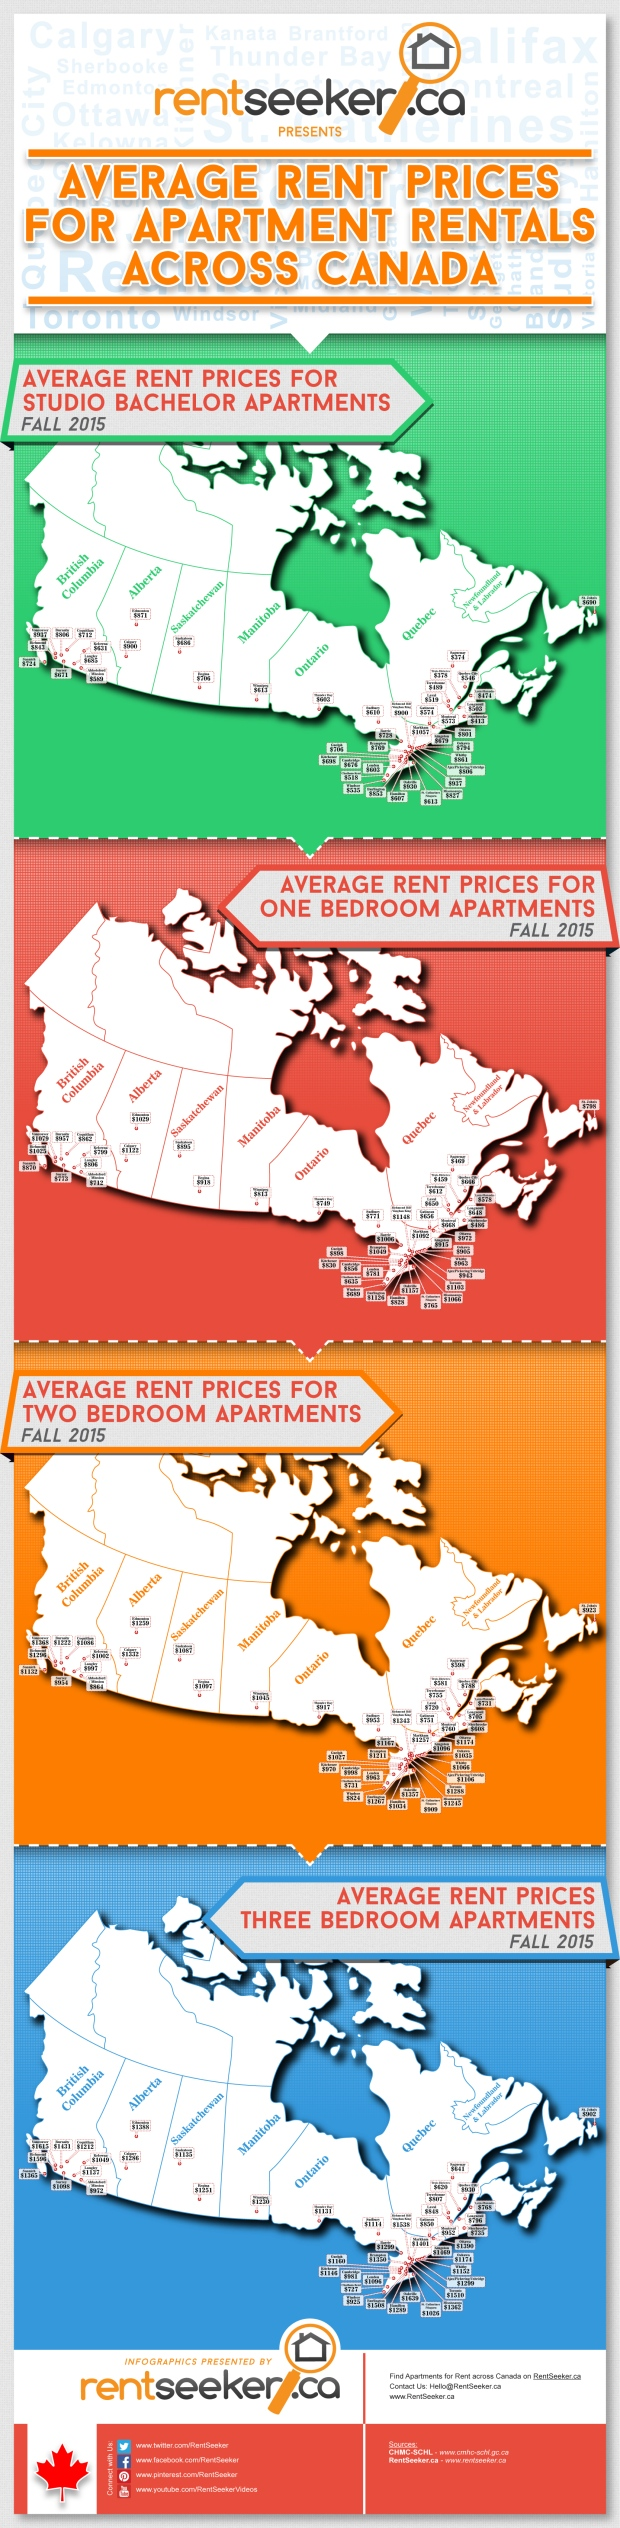 Report Reveals Average Rent Prices Across Canada CTV News - Map of average rents across the us in major cities